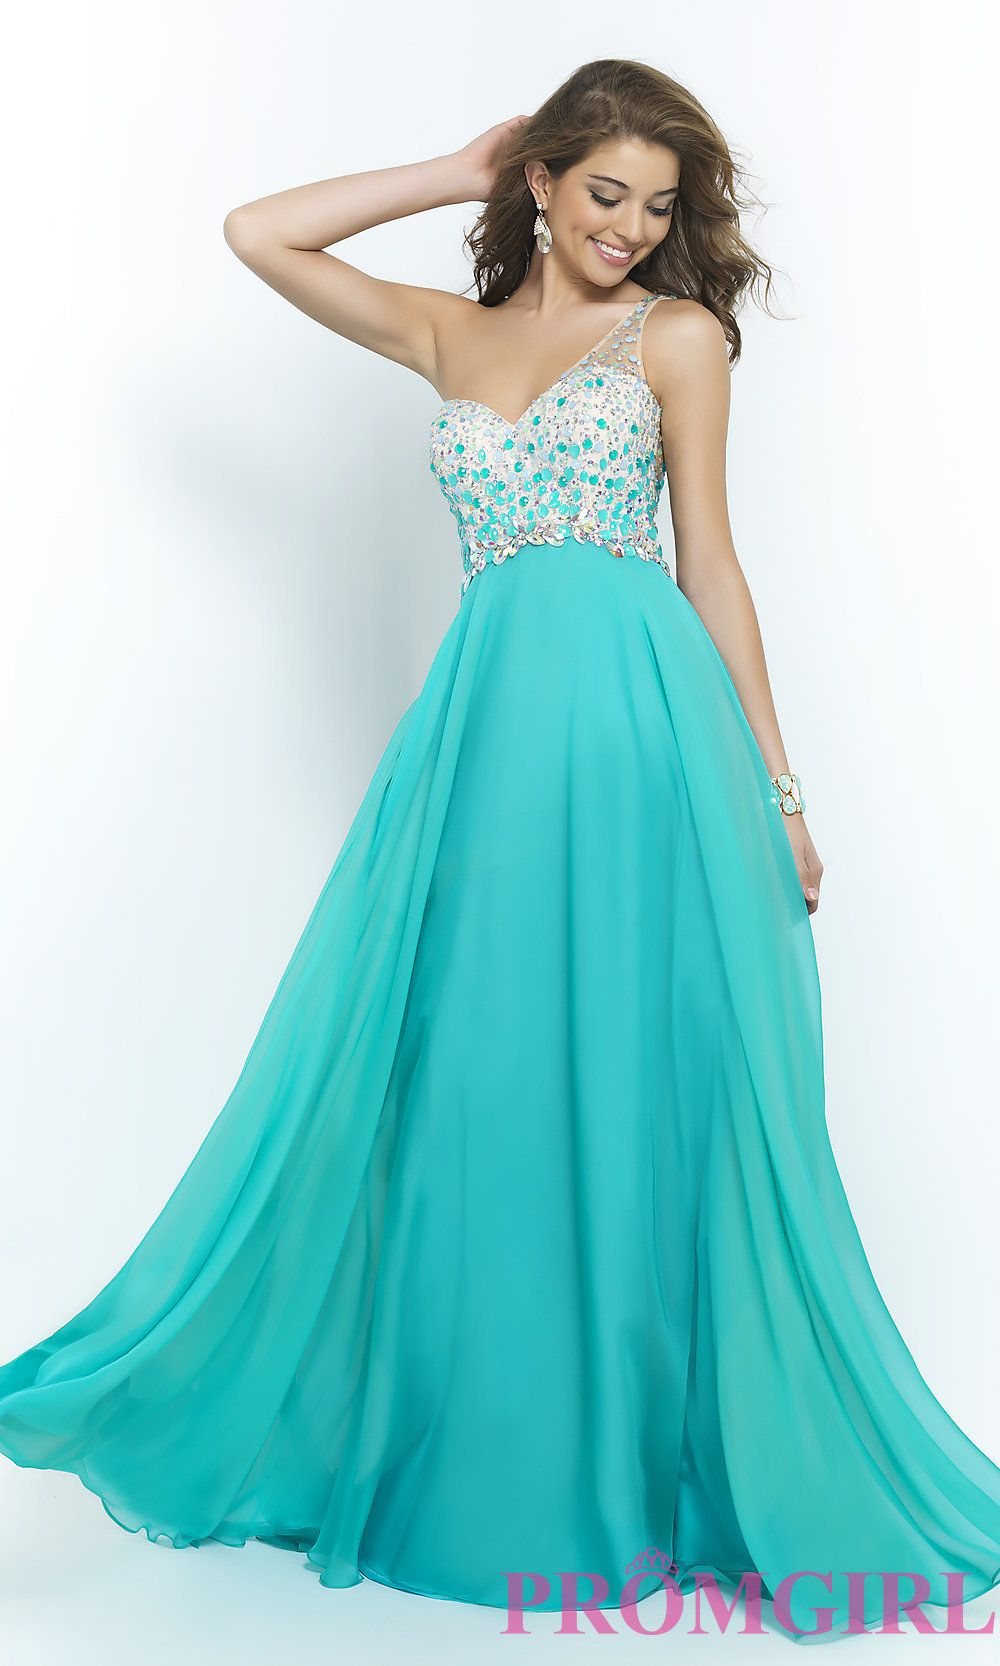 Image of One Shoulder Prom Dress by Blush 9965 Style: BL-9965s ...